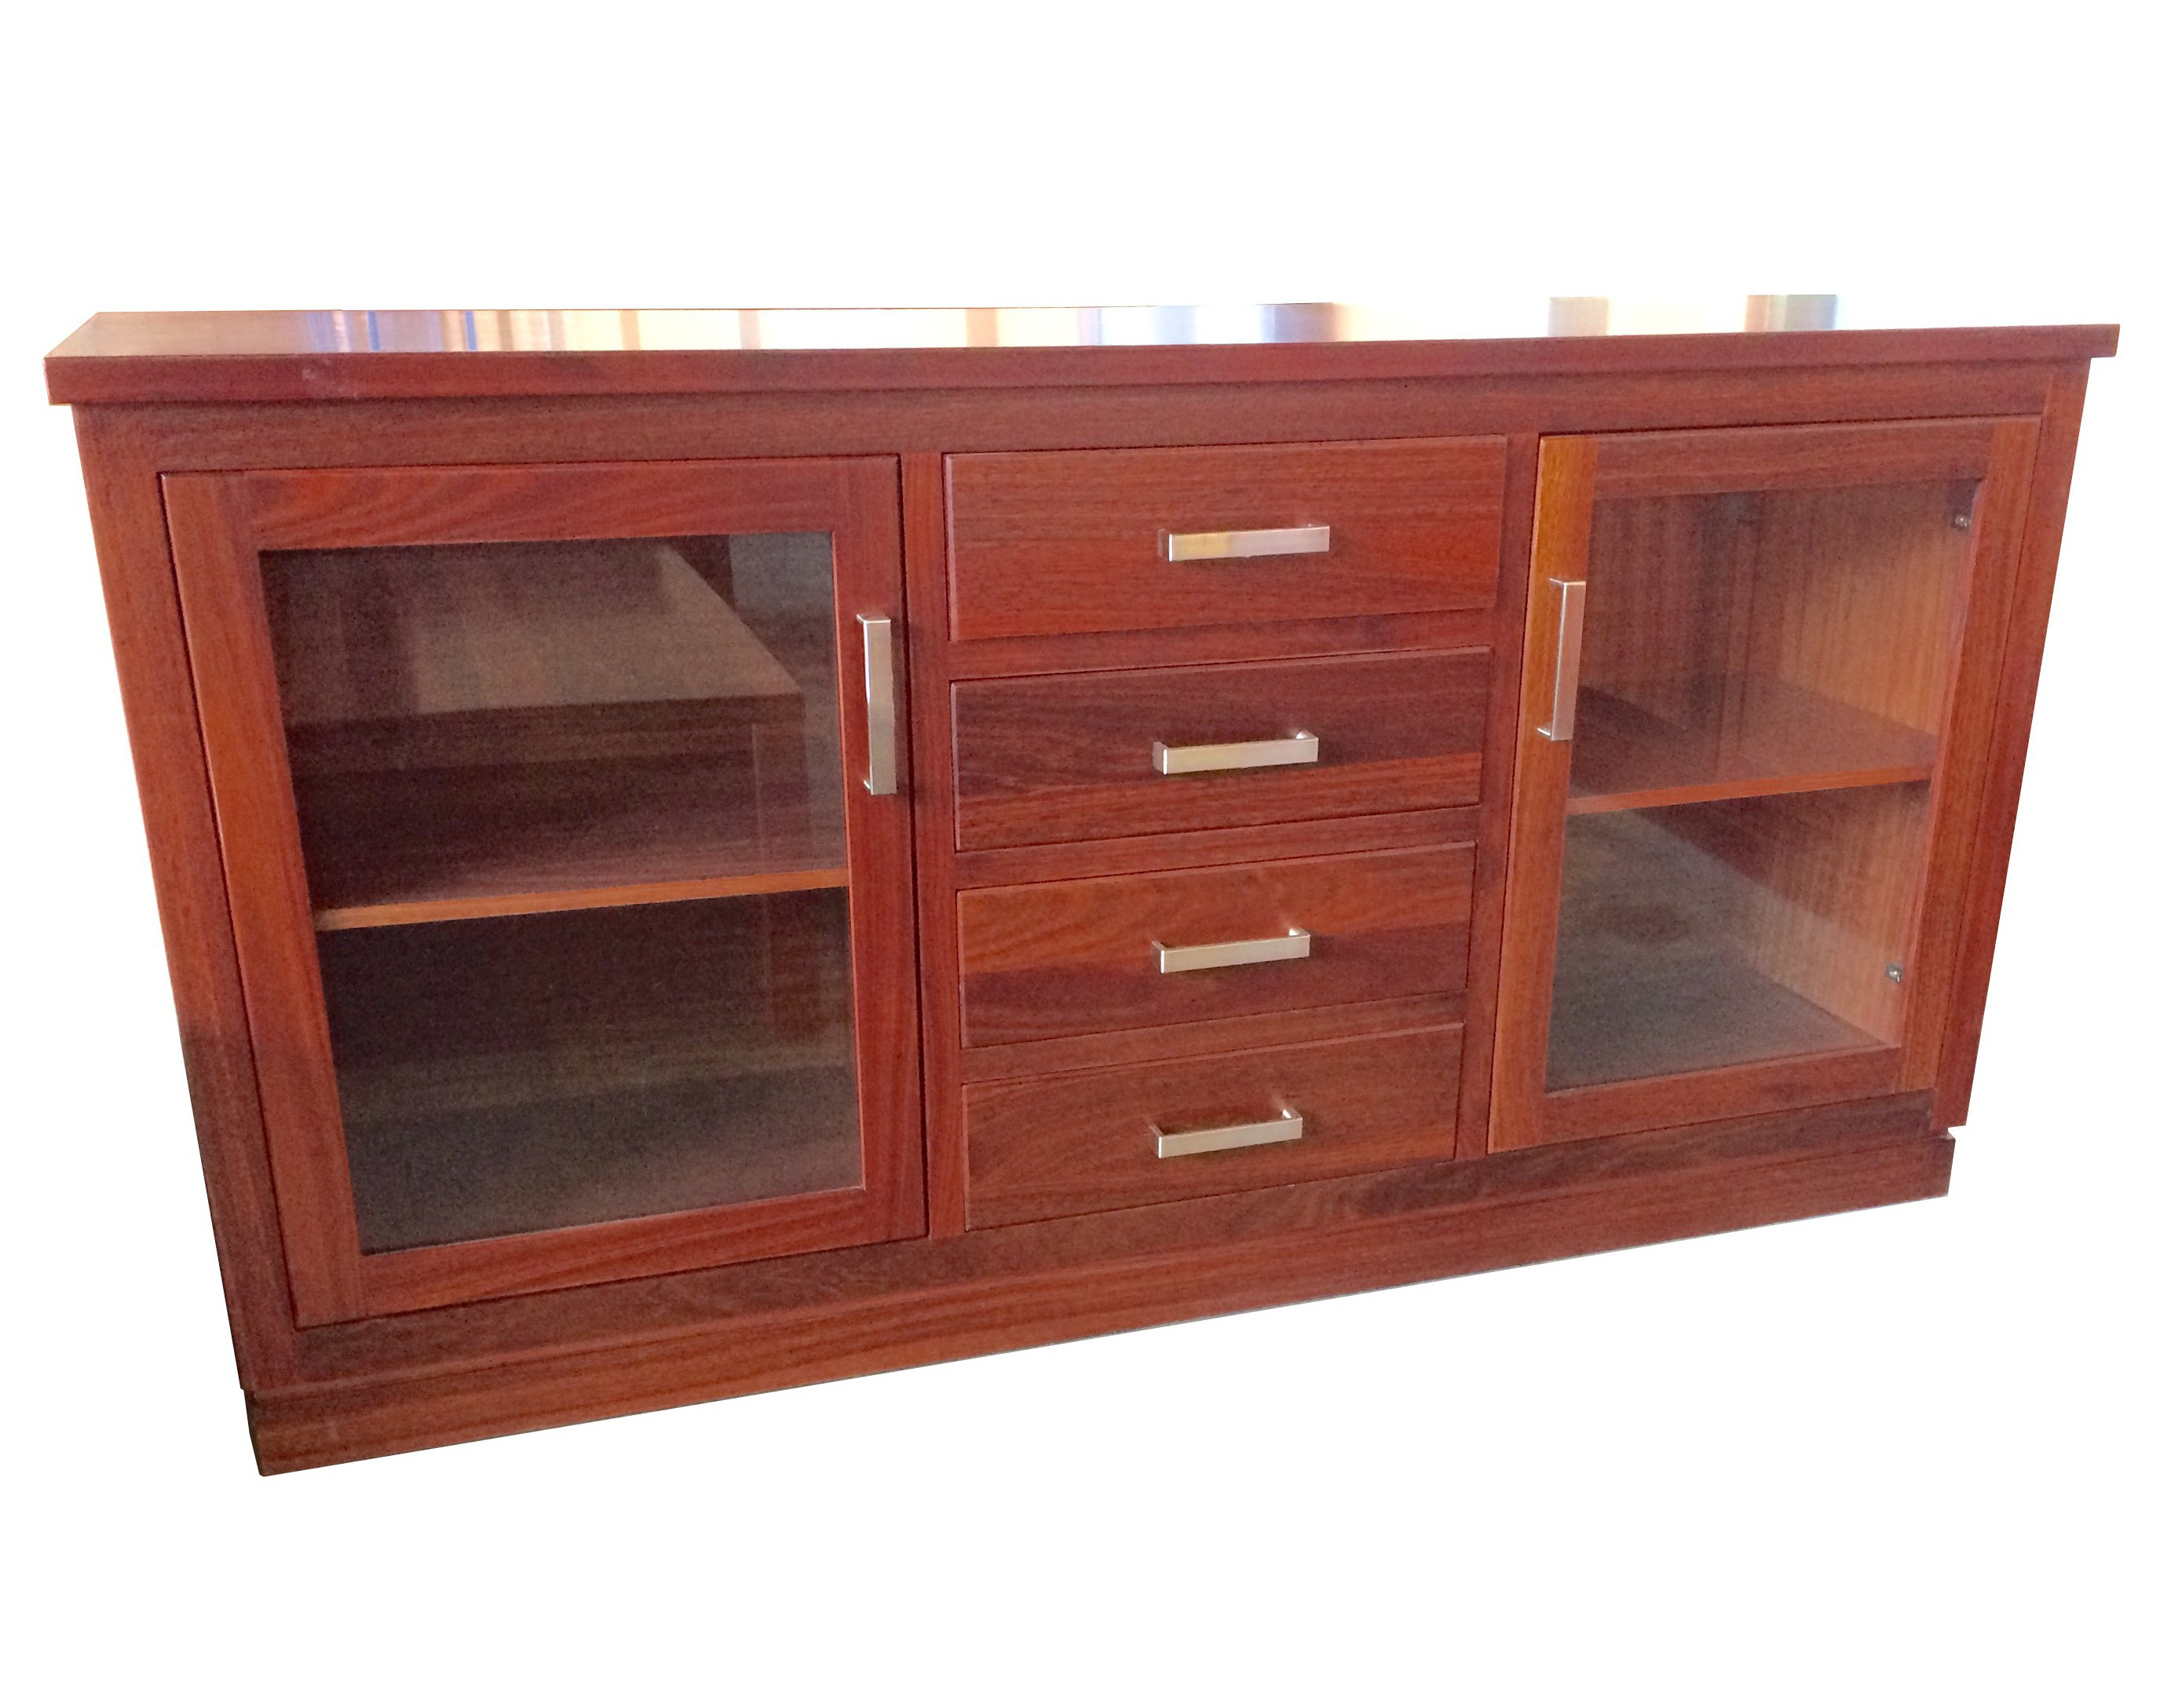 Jarrah Buffet Unit 2 Door 1298 Furniture Direct Sale : jarrahbuffet from www.furnituredirectsale.com.au size 2751 x 2175 jpeg 644kB